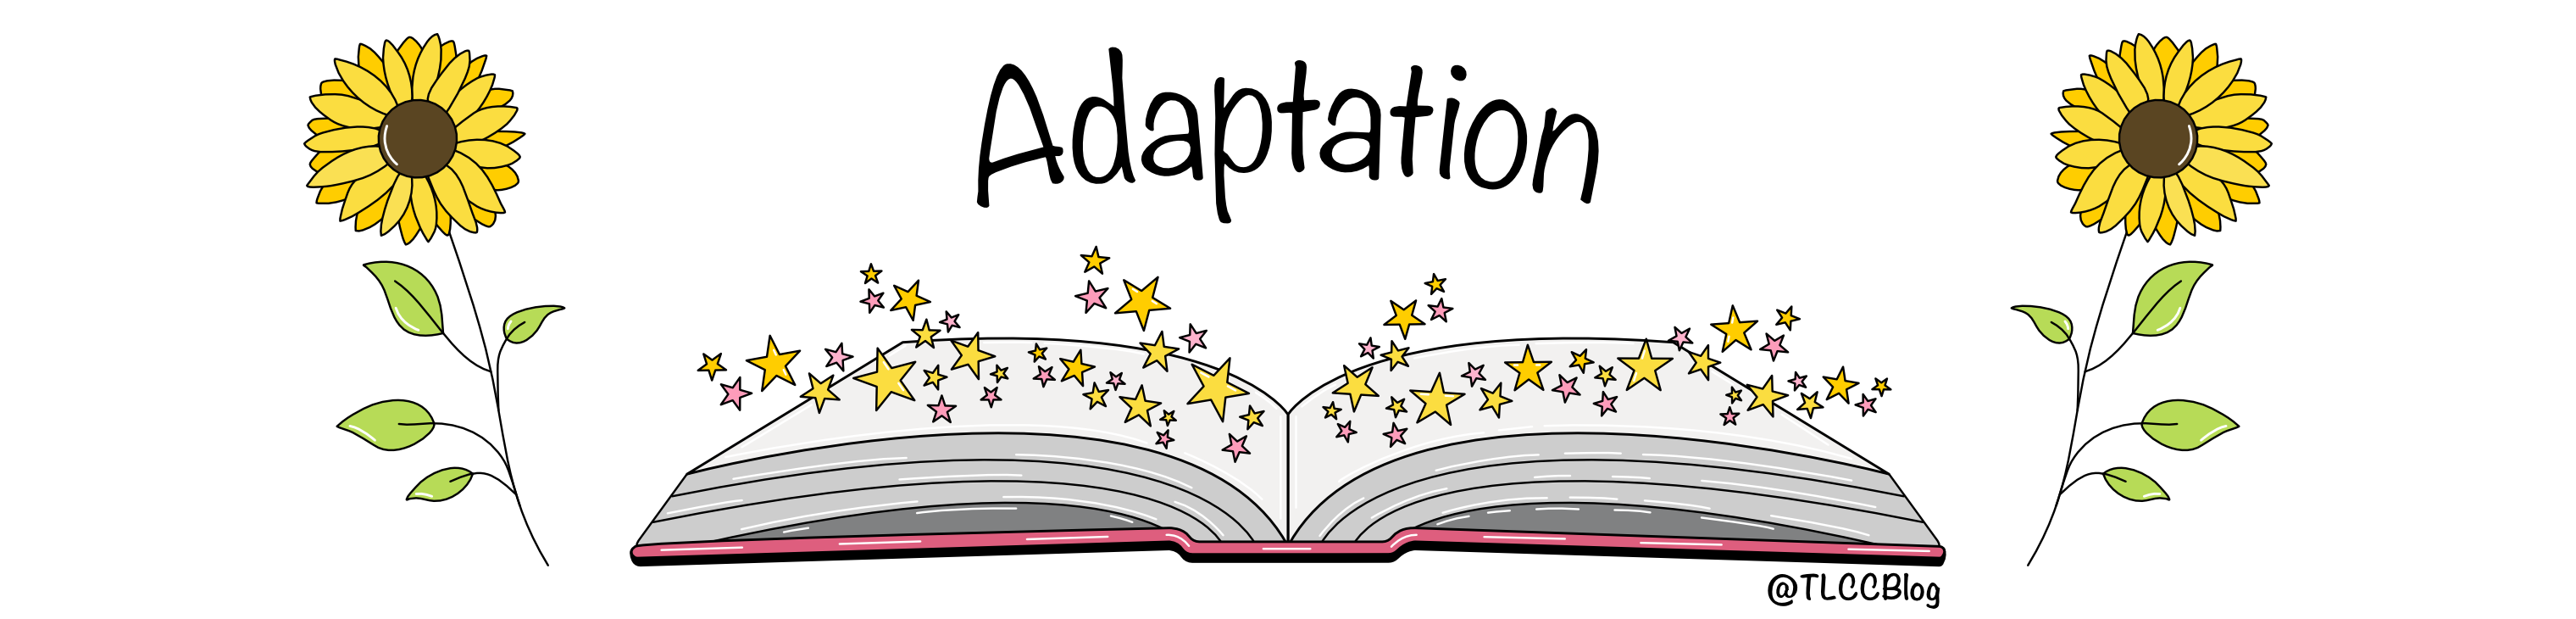 Adaptation Header